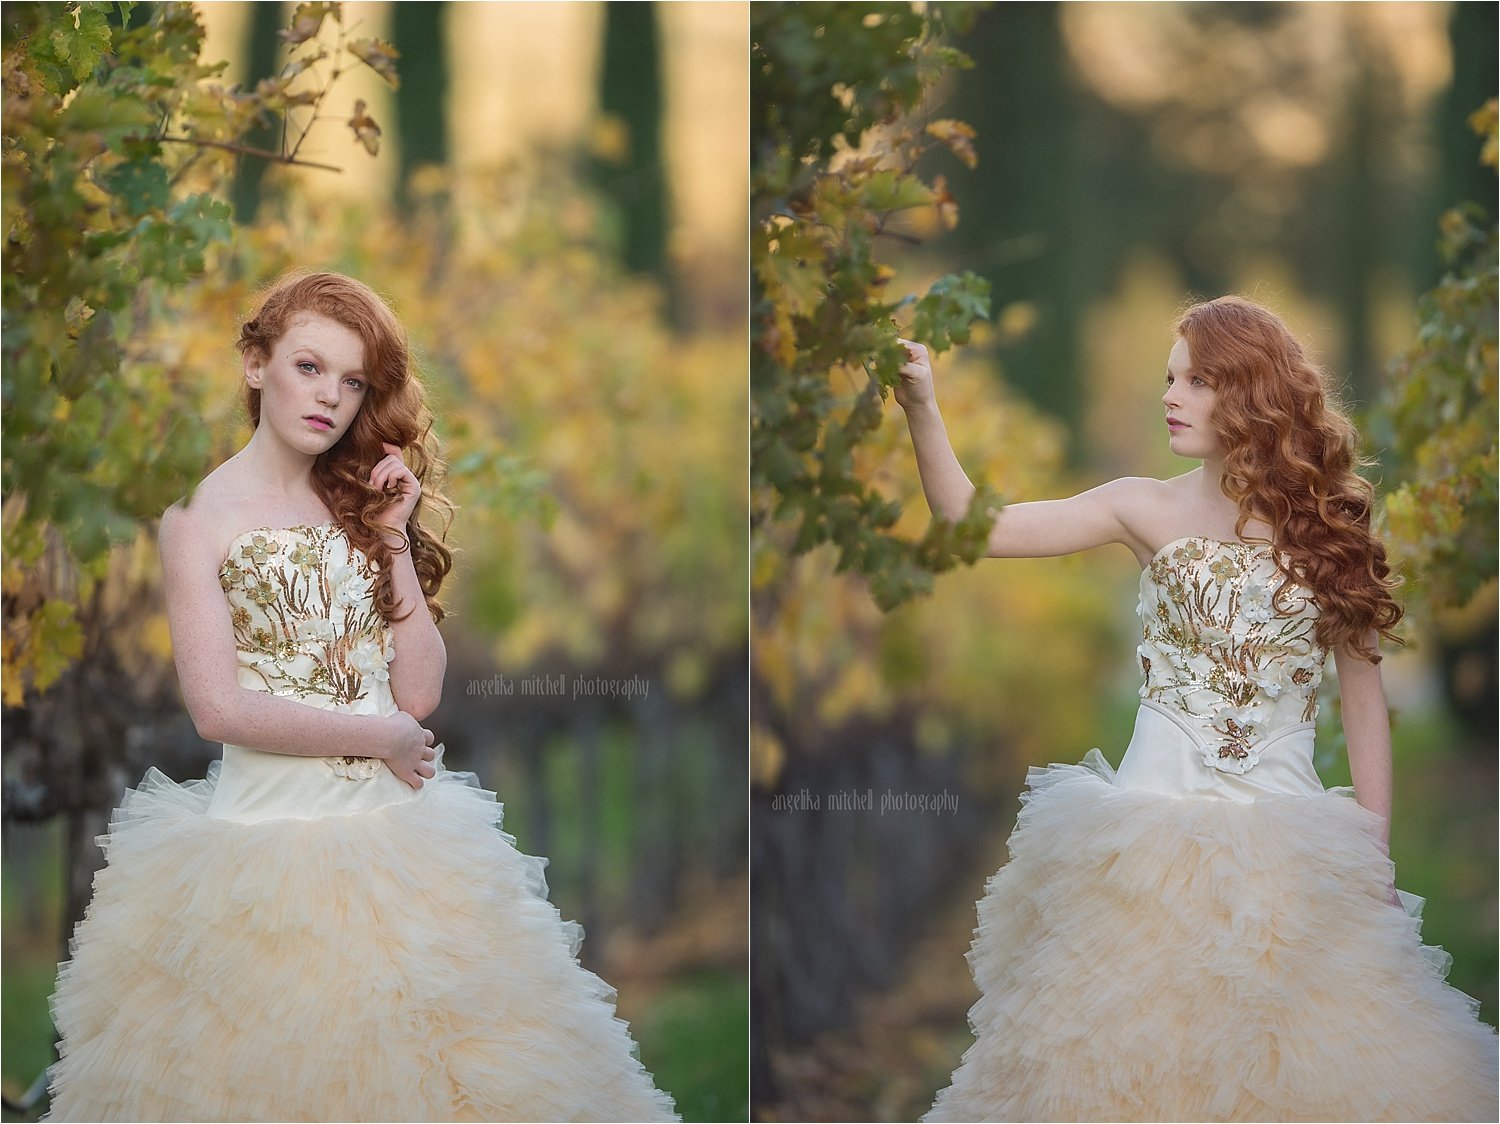 Bentley and Lace Editorial Shoot- Angelika Mitchell Photography